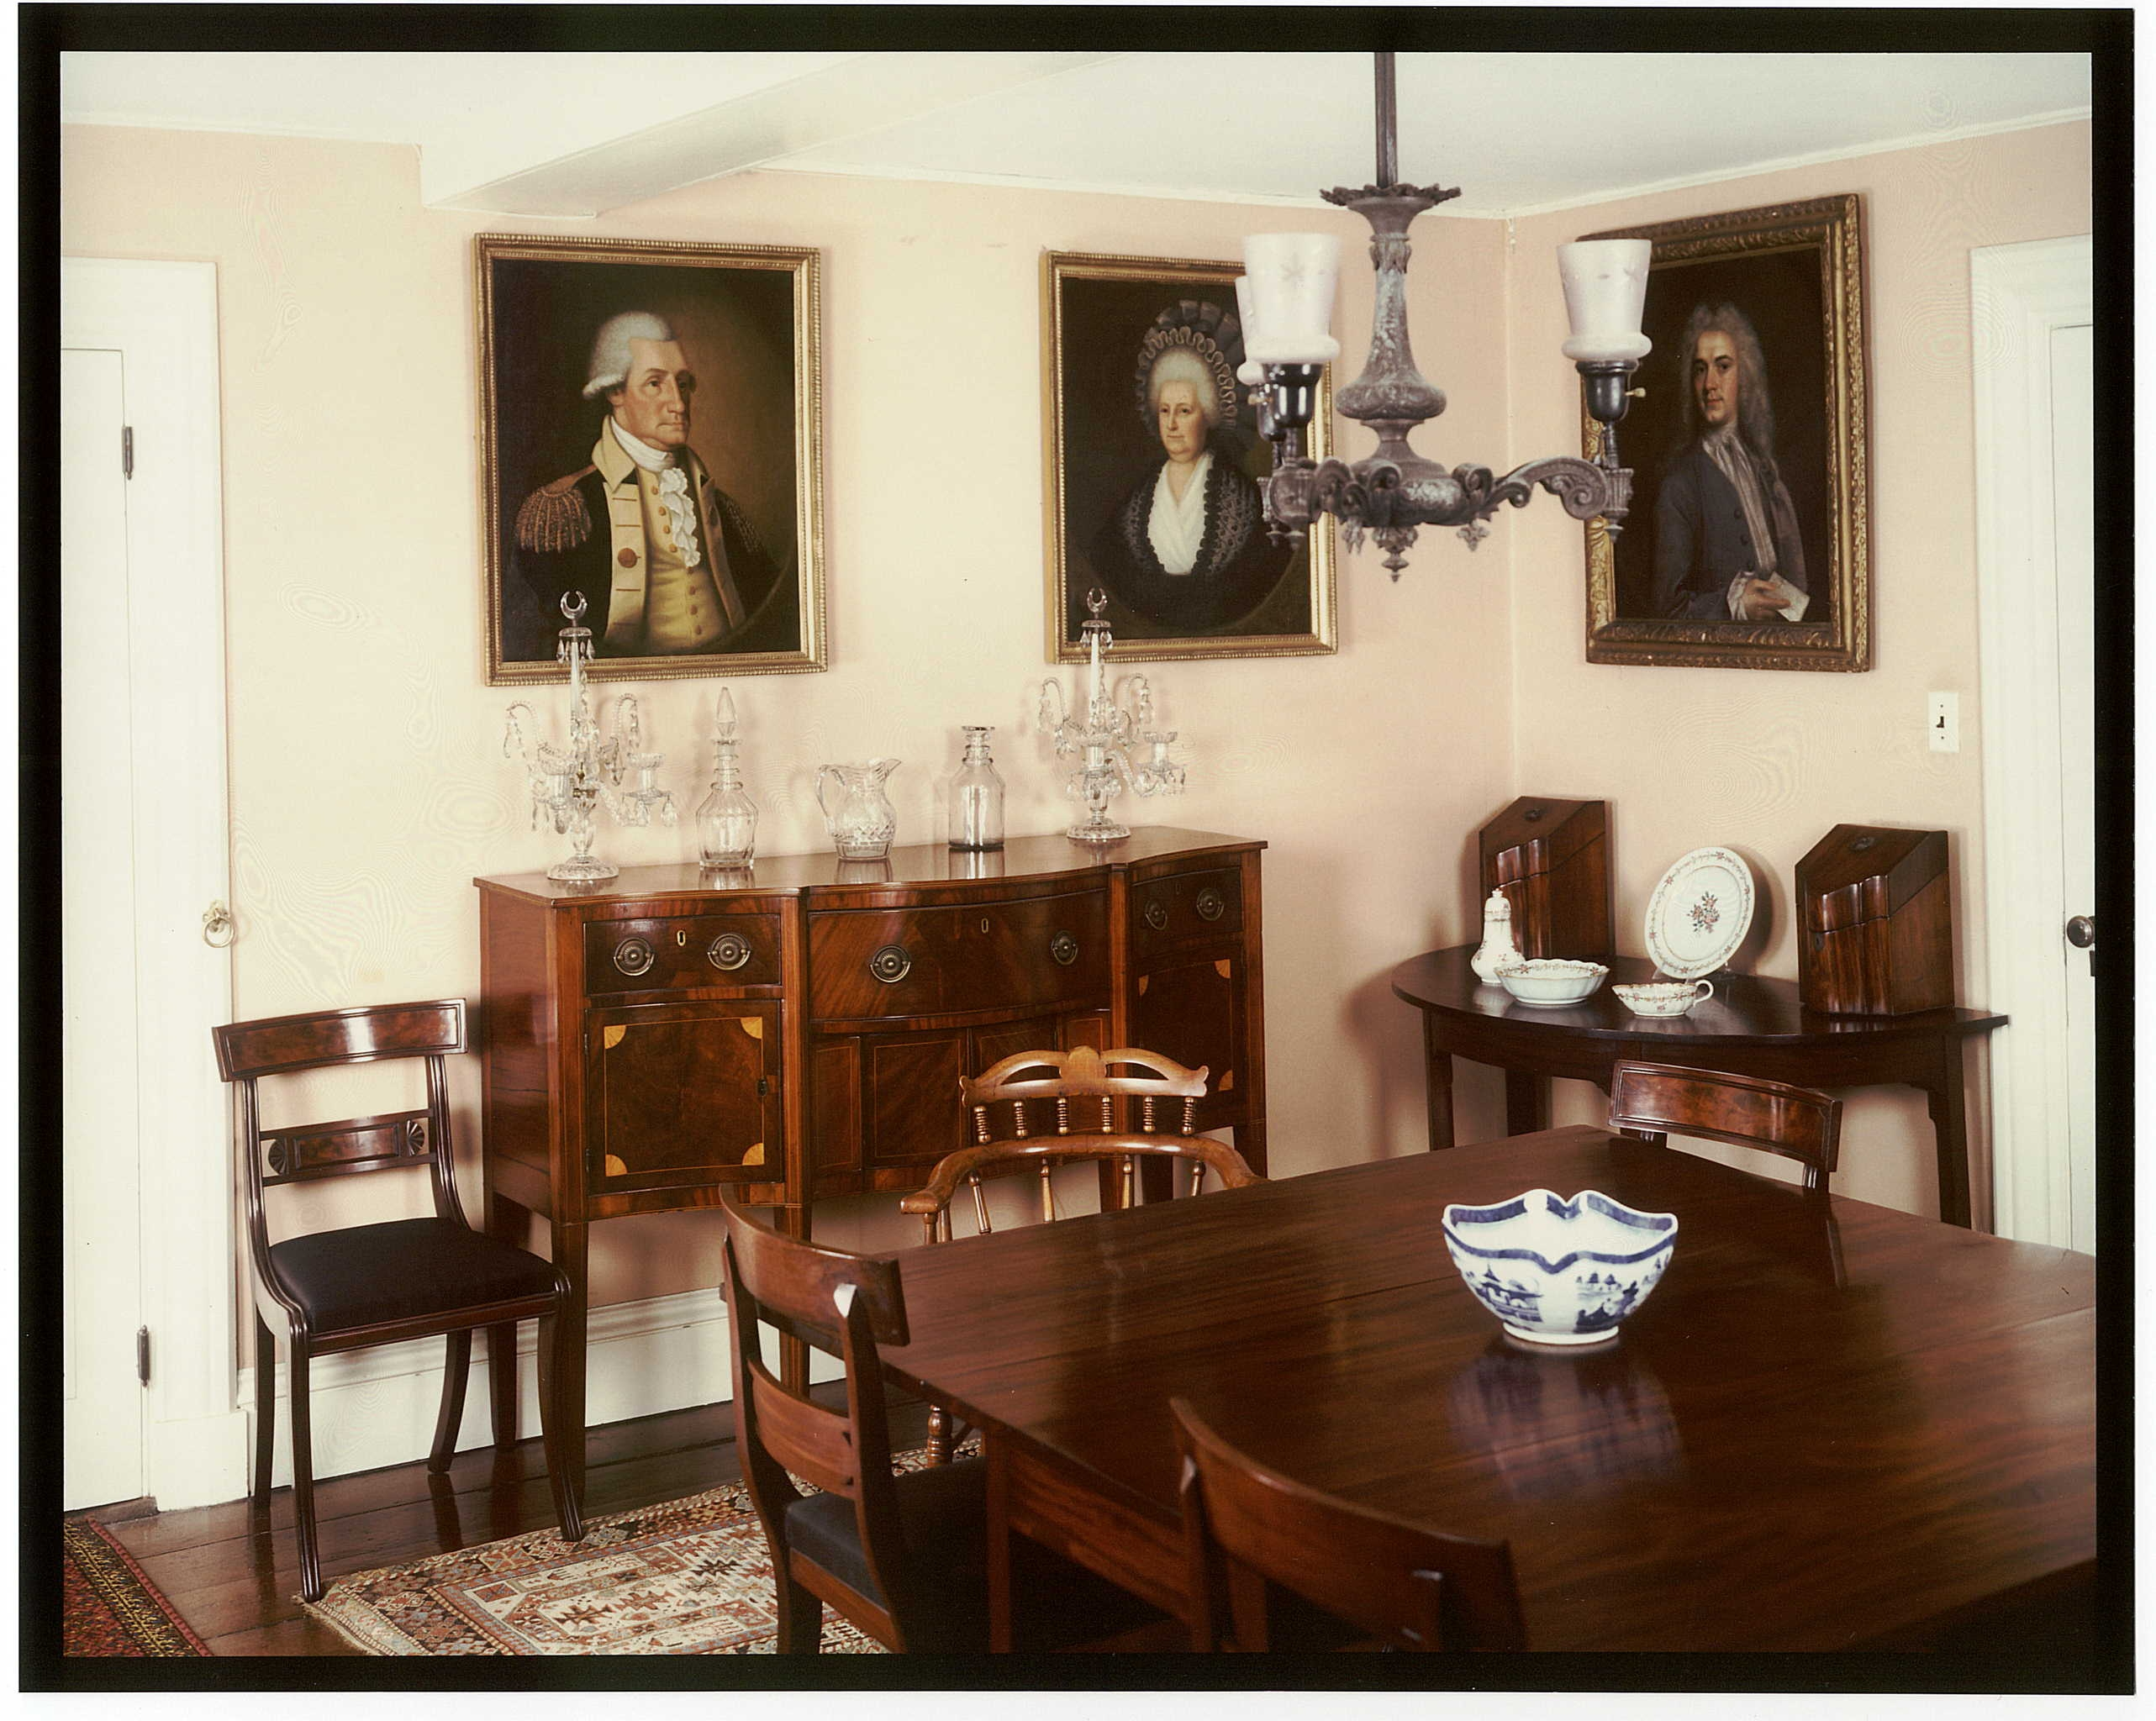 The Old House Interior Images